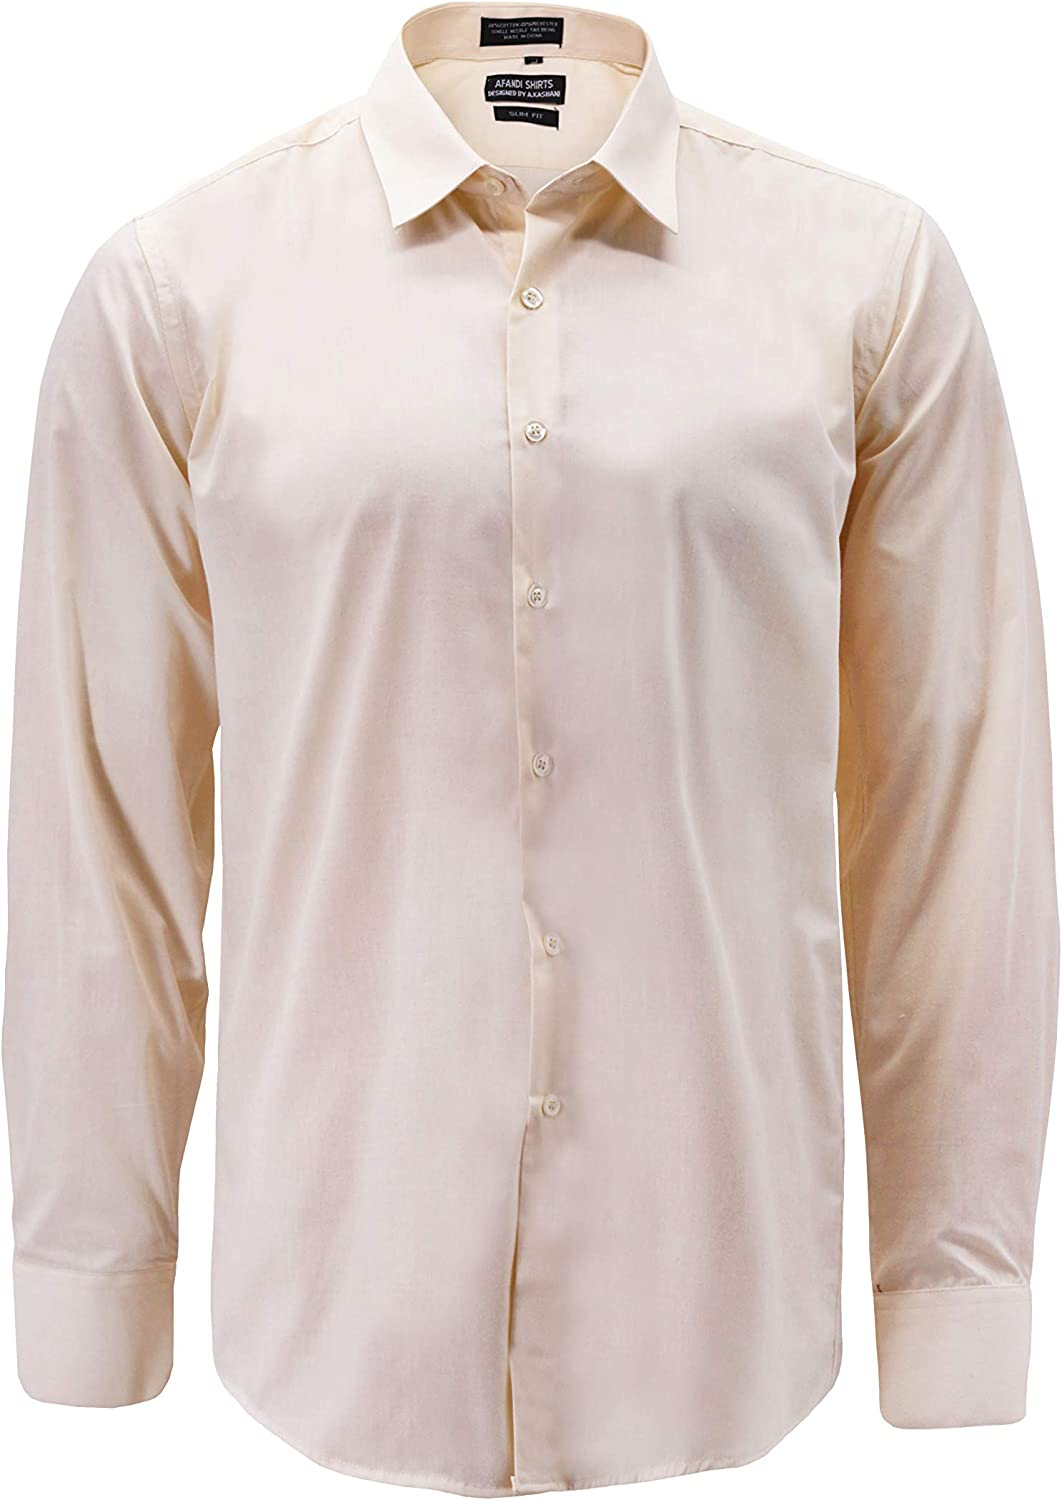 Men's Classic Button Up Long Sleeve Solid Cream Color Slim Fit Dress Shirt